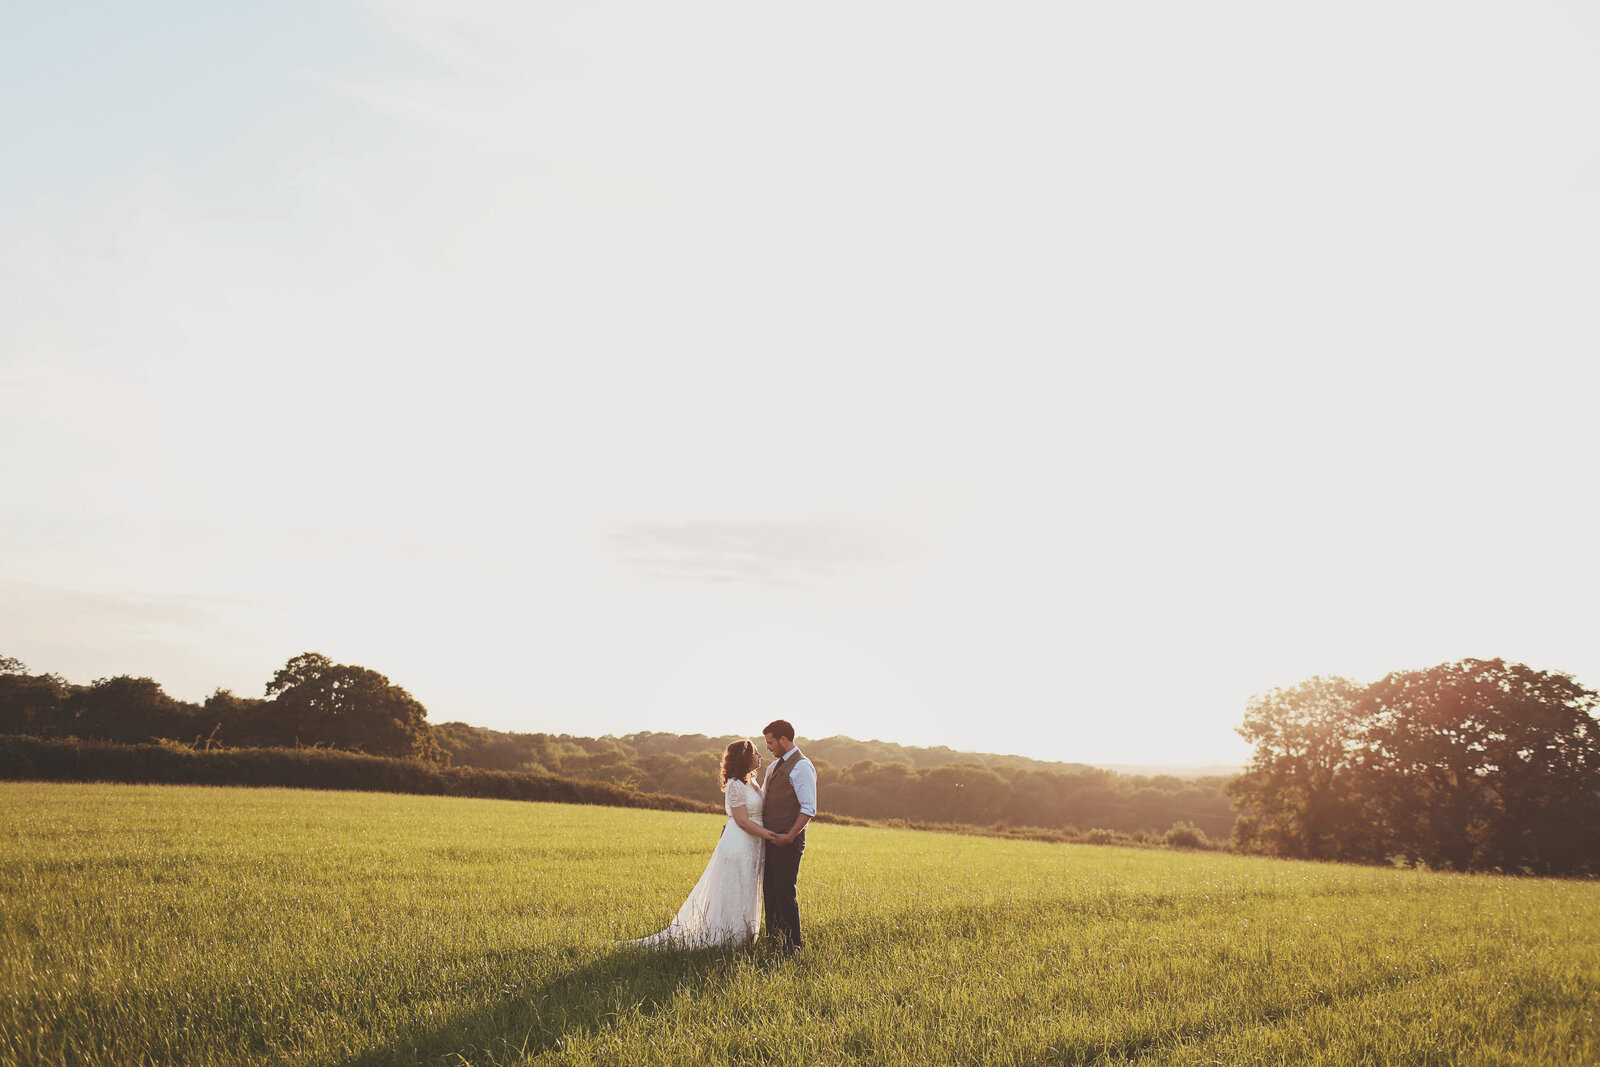 WP-BRIDE-GROOM-GOLDEN-HOUR-FIELD-WEDDING_0015